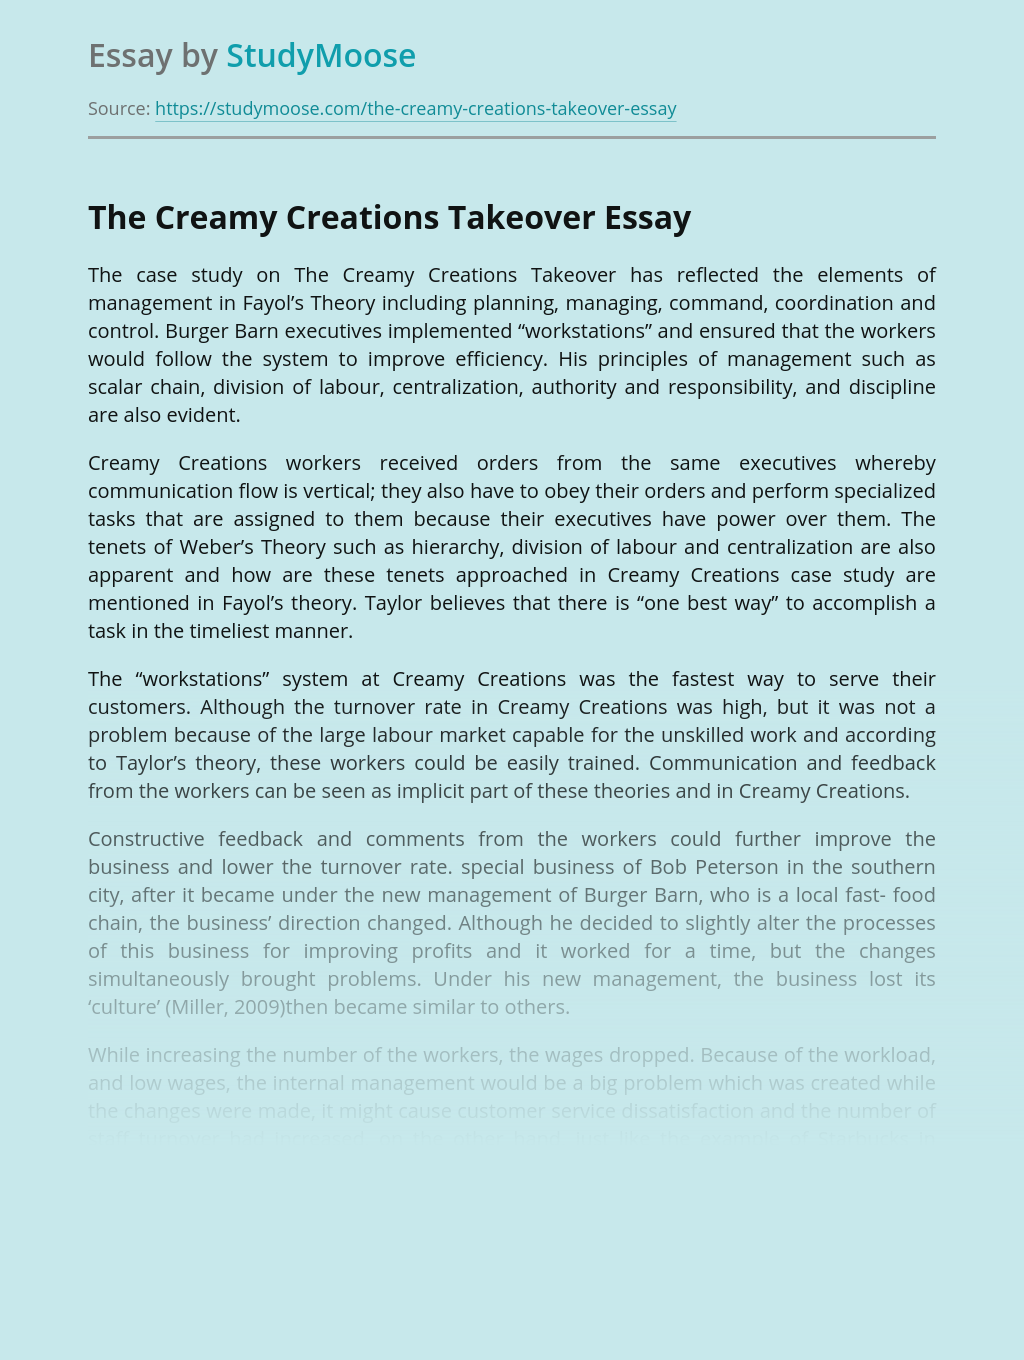 The Creamy Creations Takeover